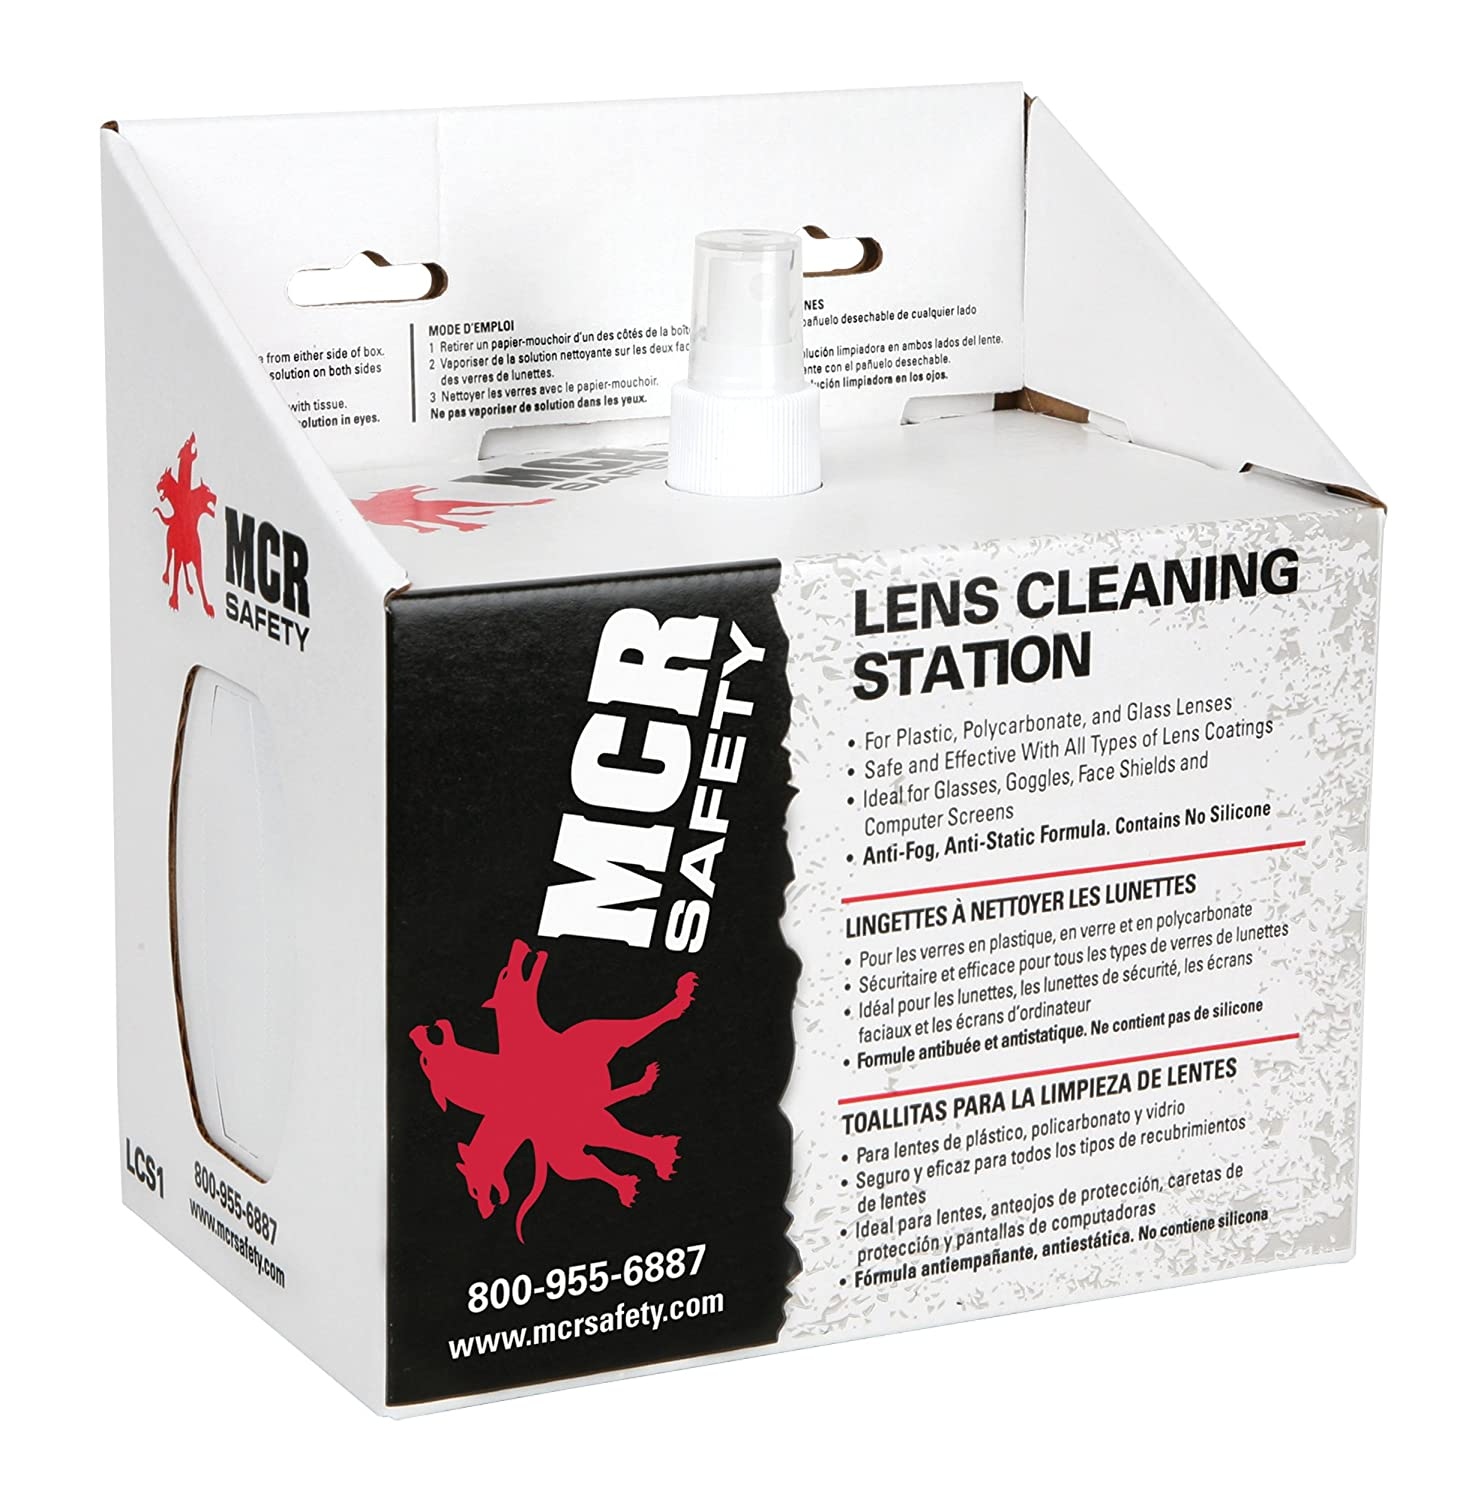 Amazon.com: Disposable Lens Cleaning Station By MCR Safety/station, Disposable Lens Cleaning, 8oz BTL: Health & Personal Care